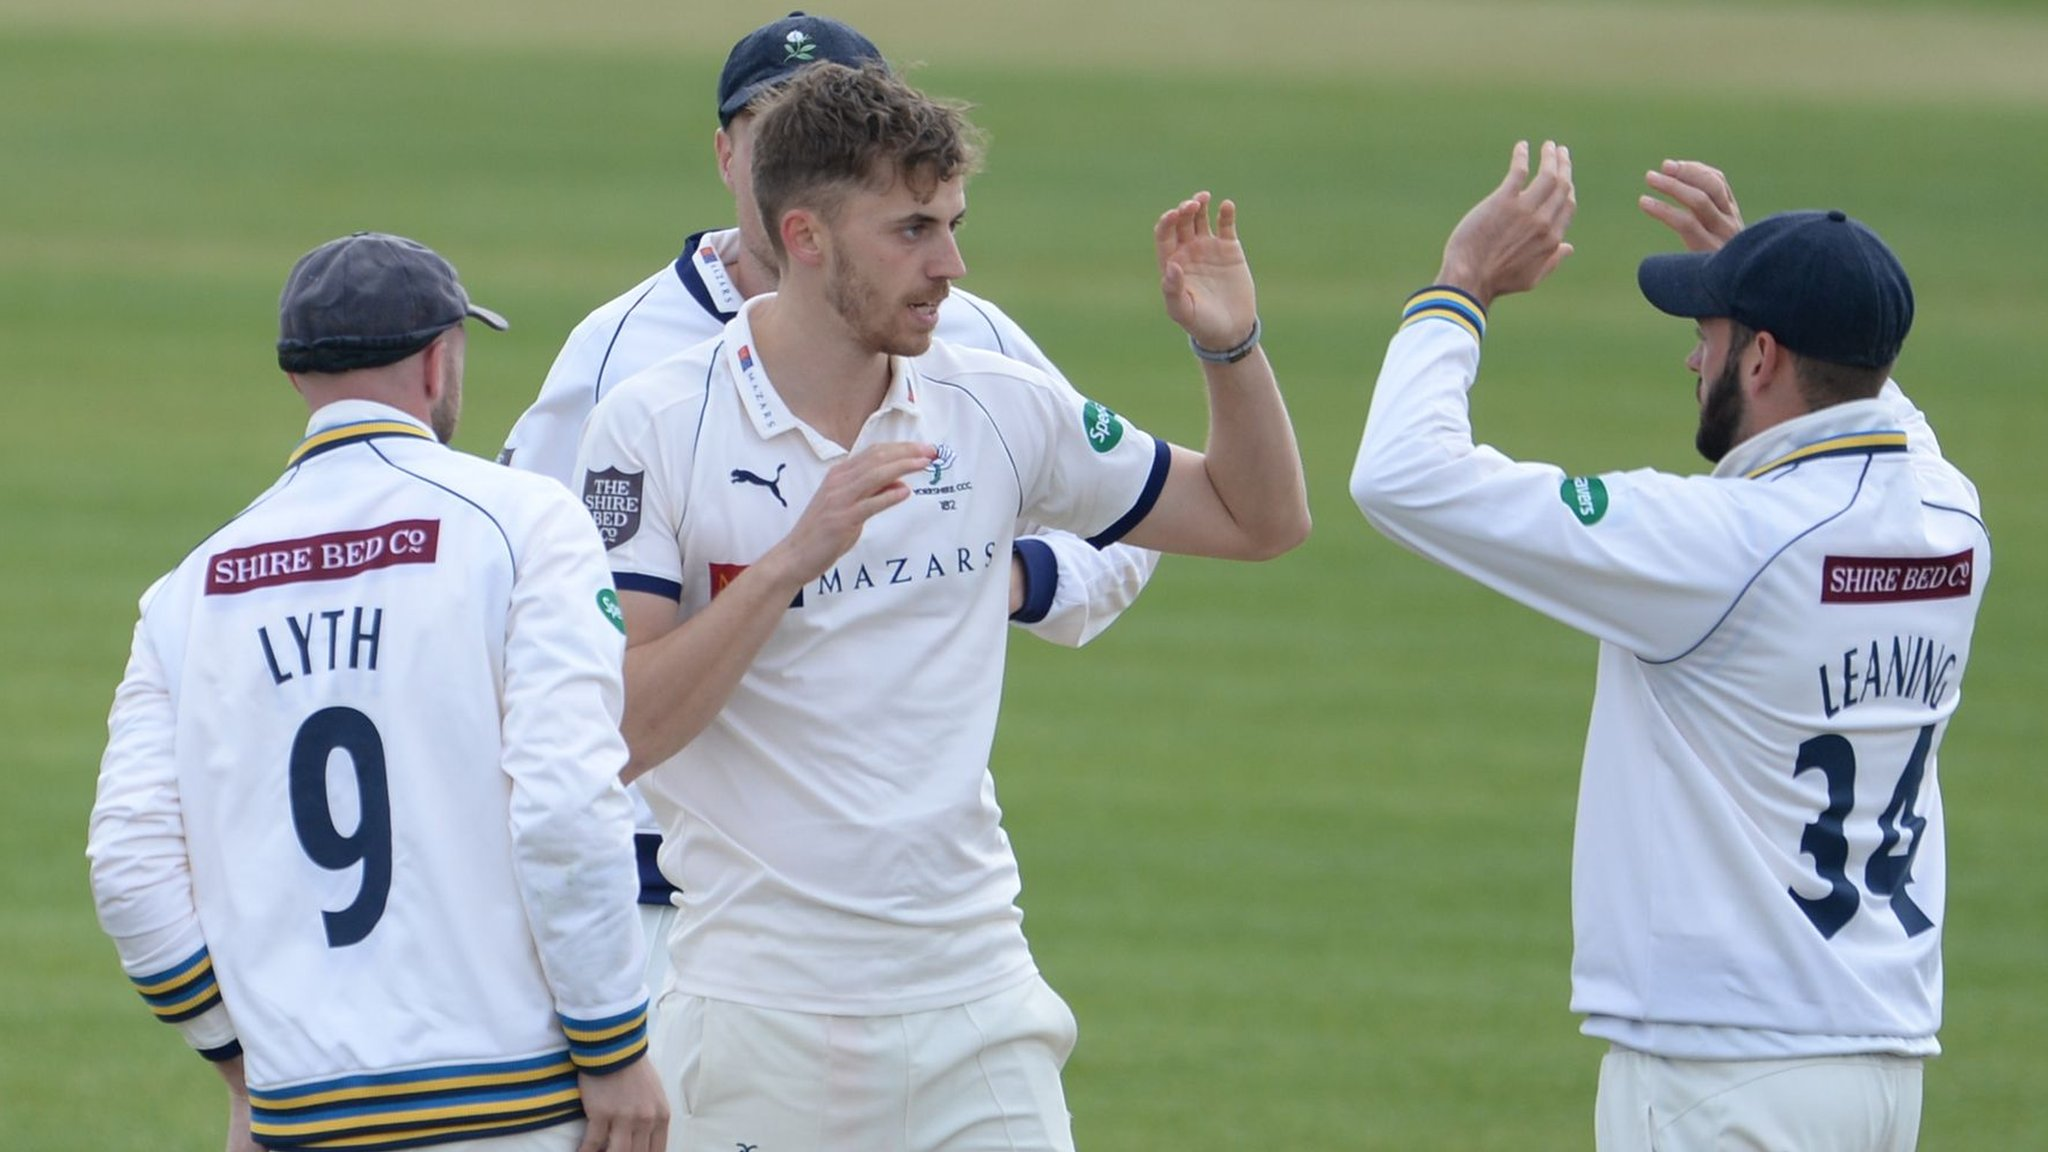 County Championship: Yorkshire force win over stubborn Kent